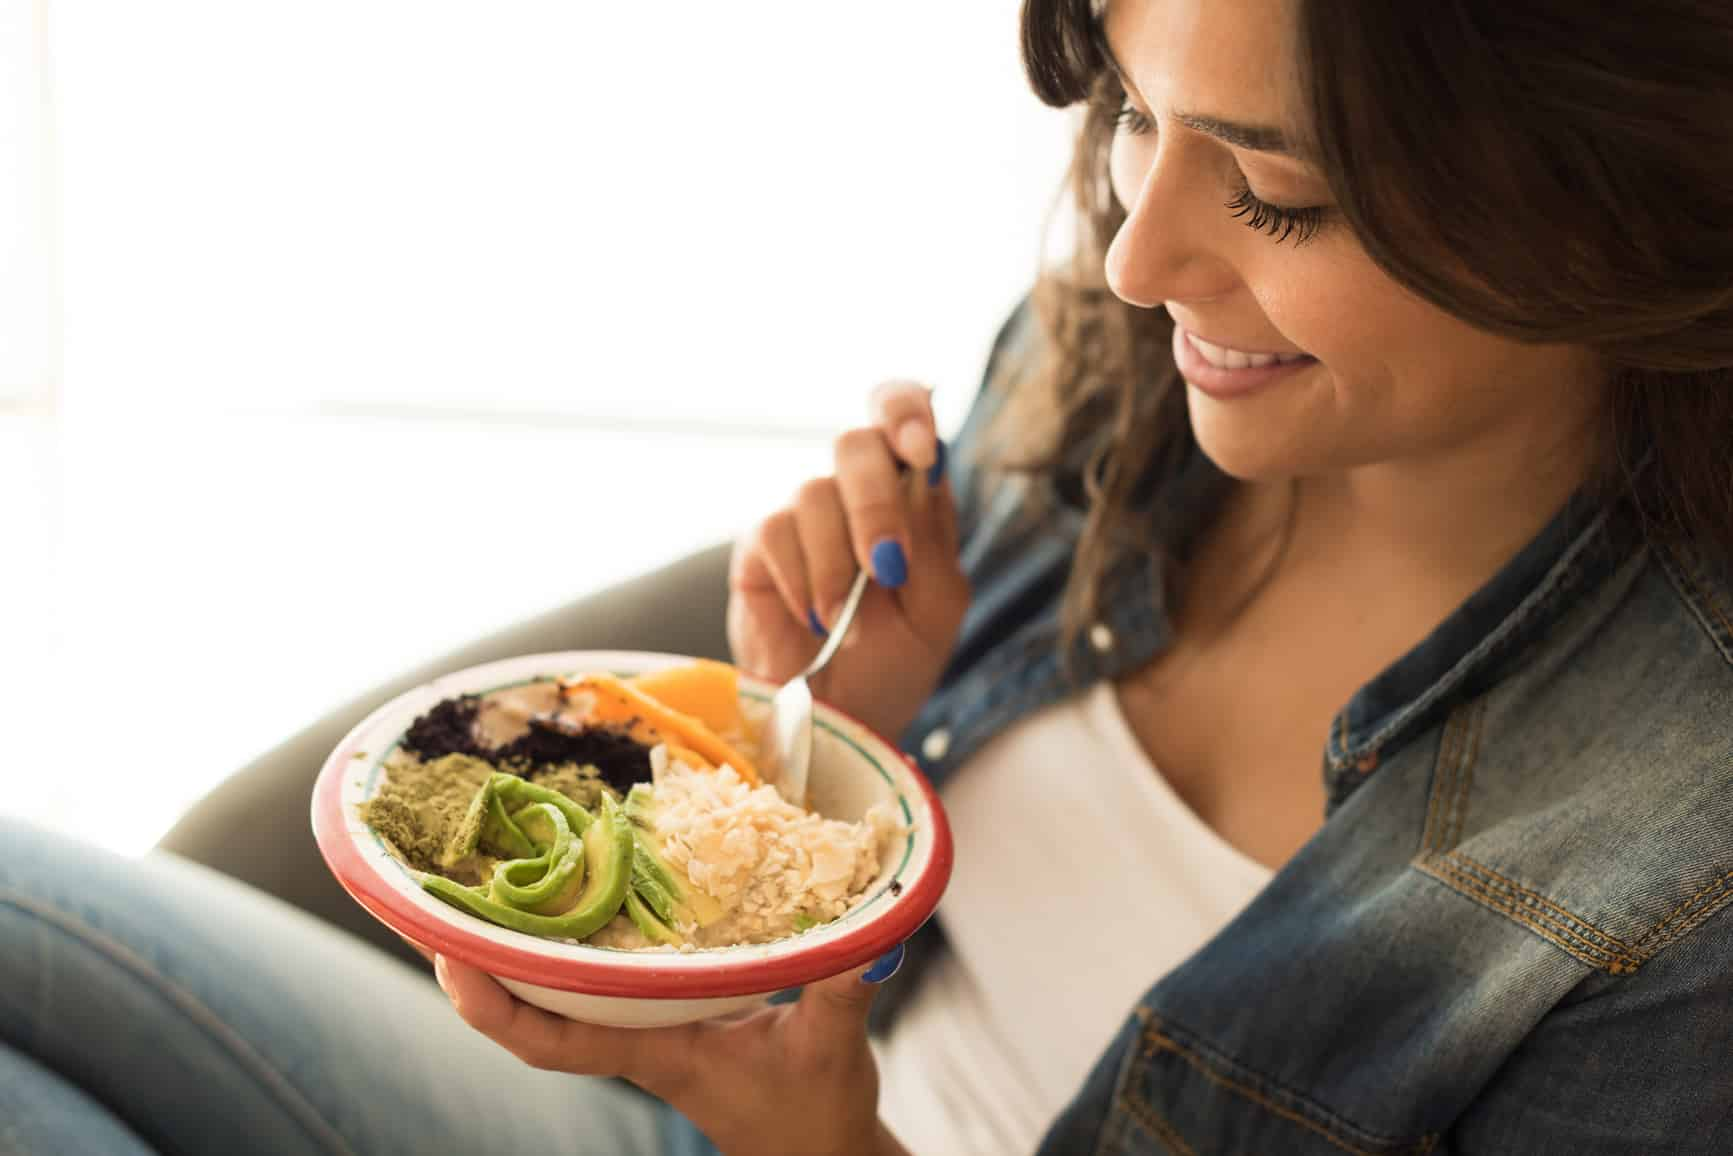 5 Healthy Foods to Eat That Actually Taste Good